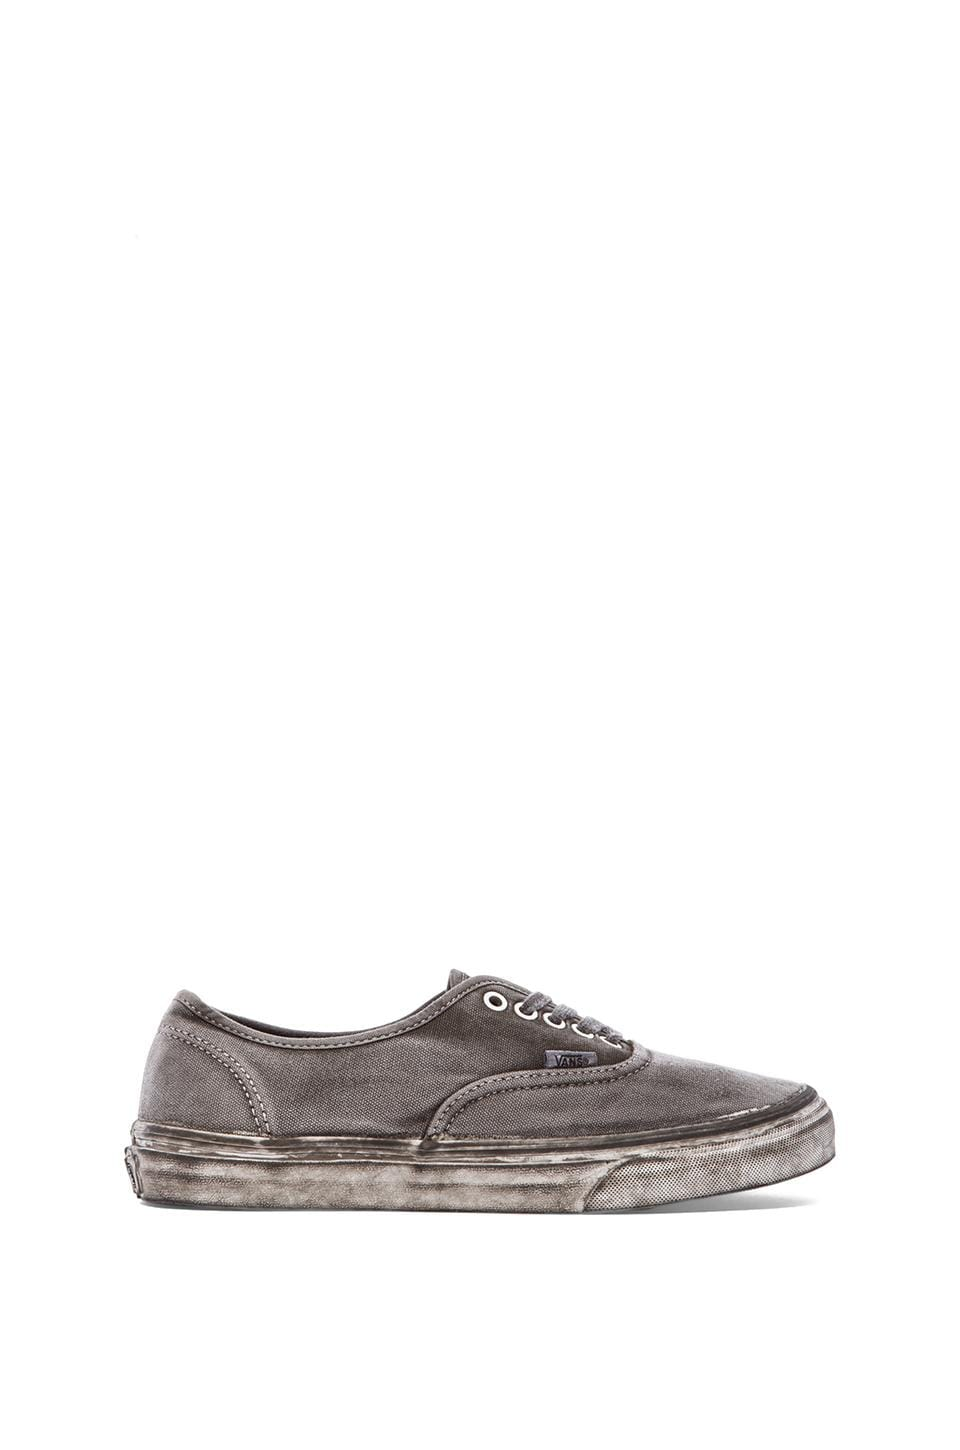 Vans California Authentic Over Washed in Black